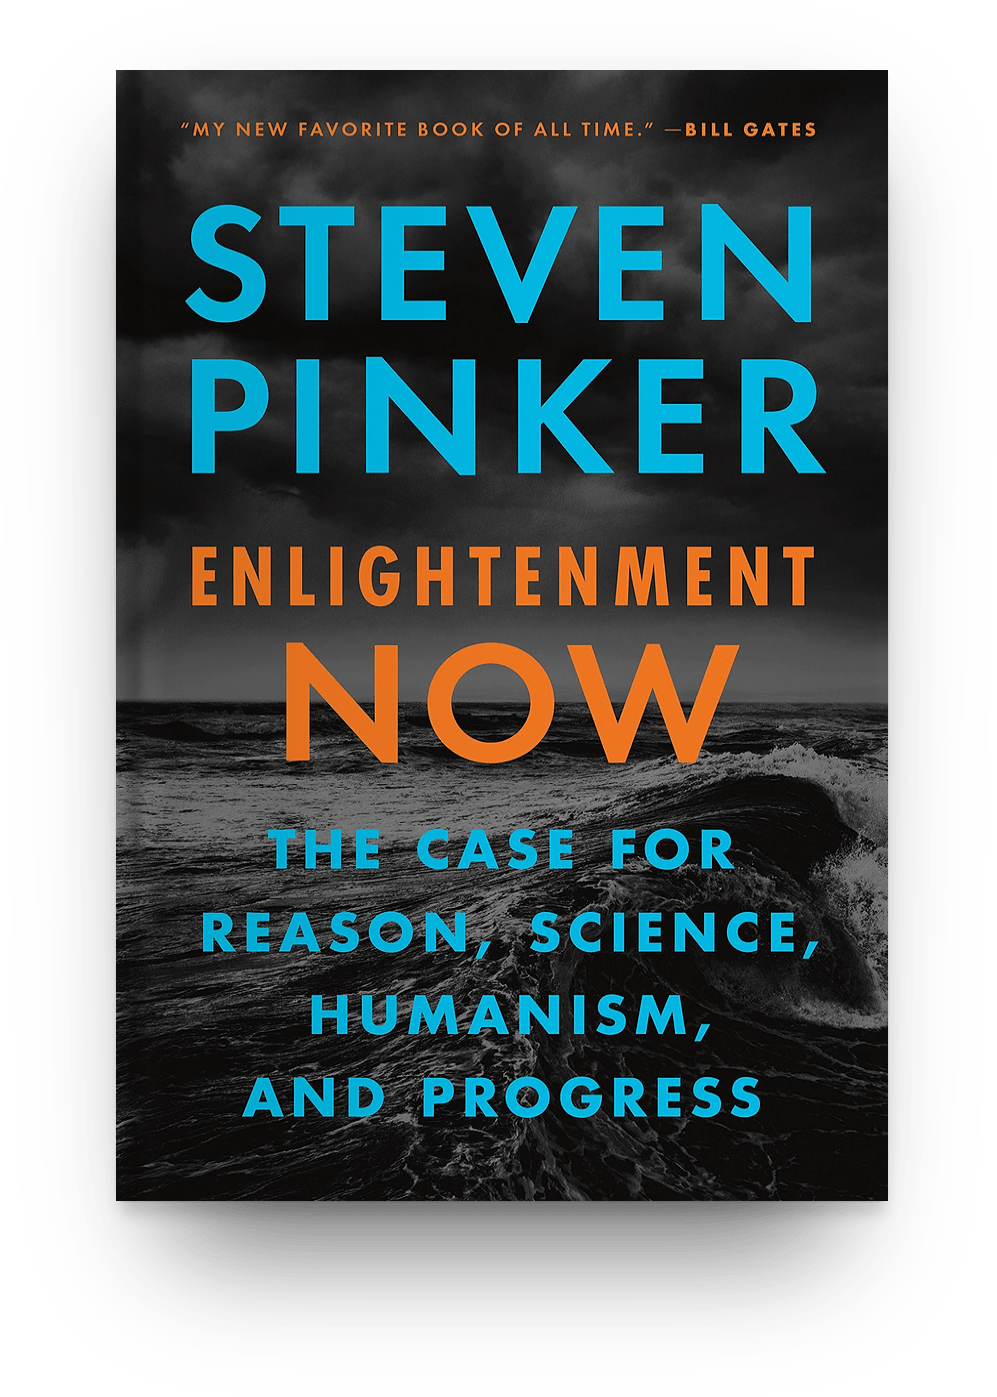 Enlightenment Now: The Case for Reason, Science, Humanism, and Progress by Steven Pinker (2018) book cover